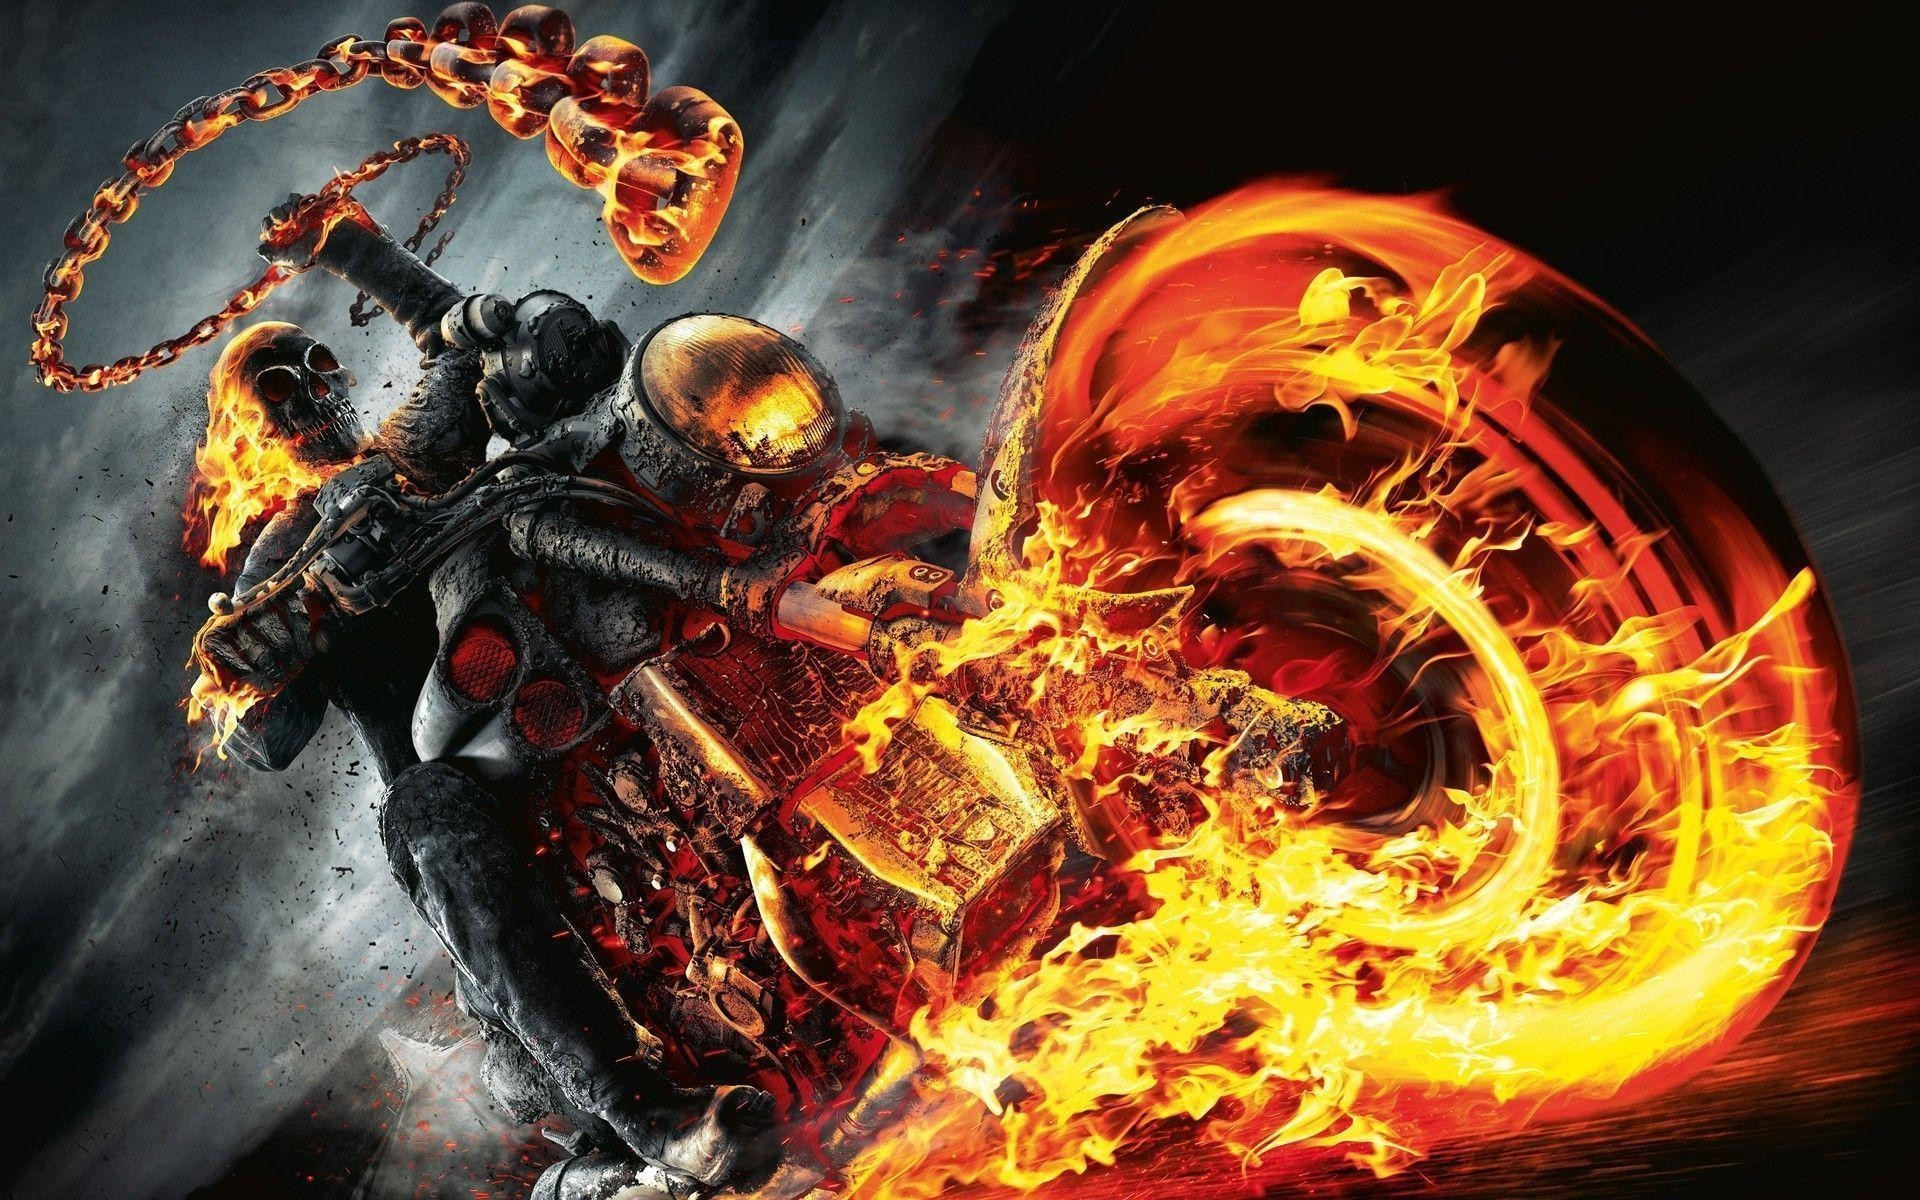 Res: 1920x1200, Most Downloaded Fire Skull Wallpapers - Full HD wallpaper search